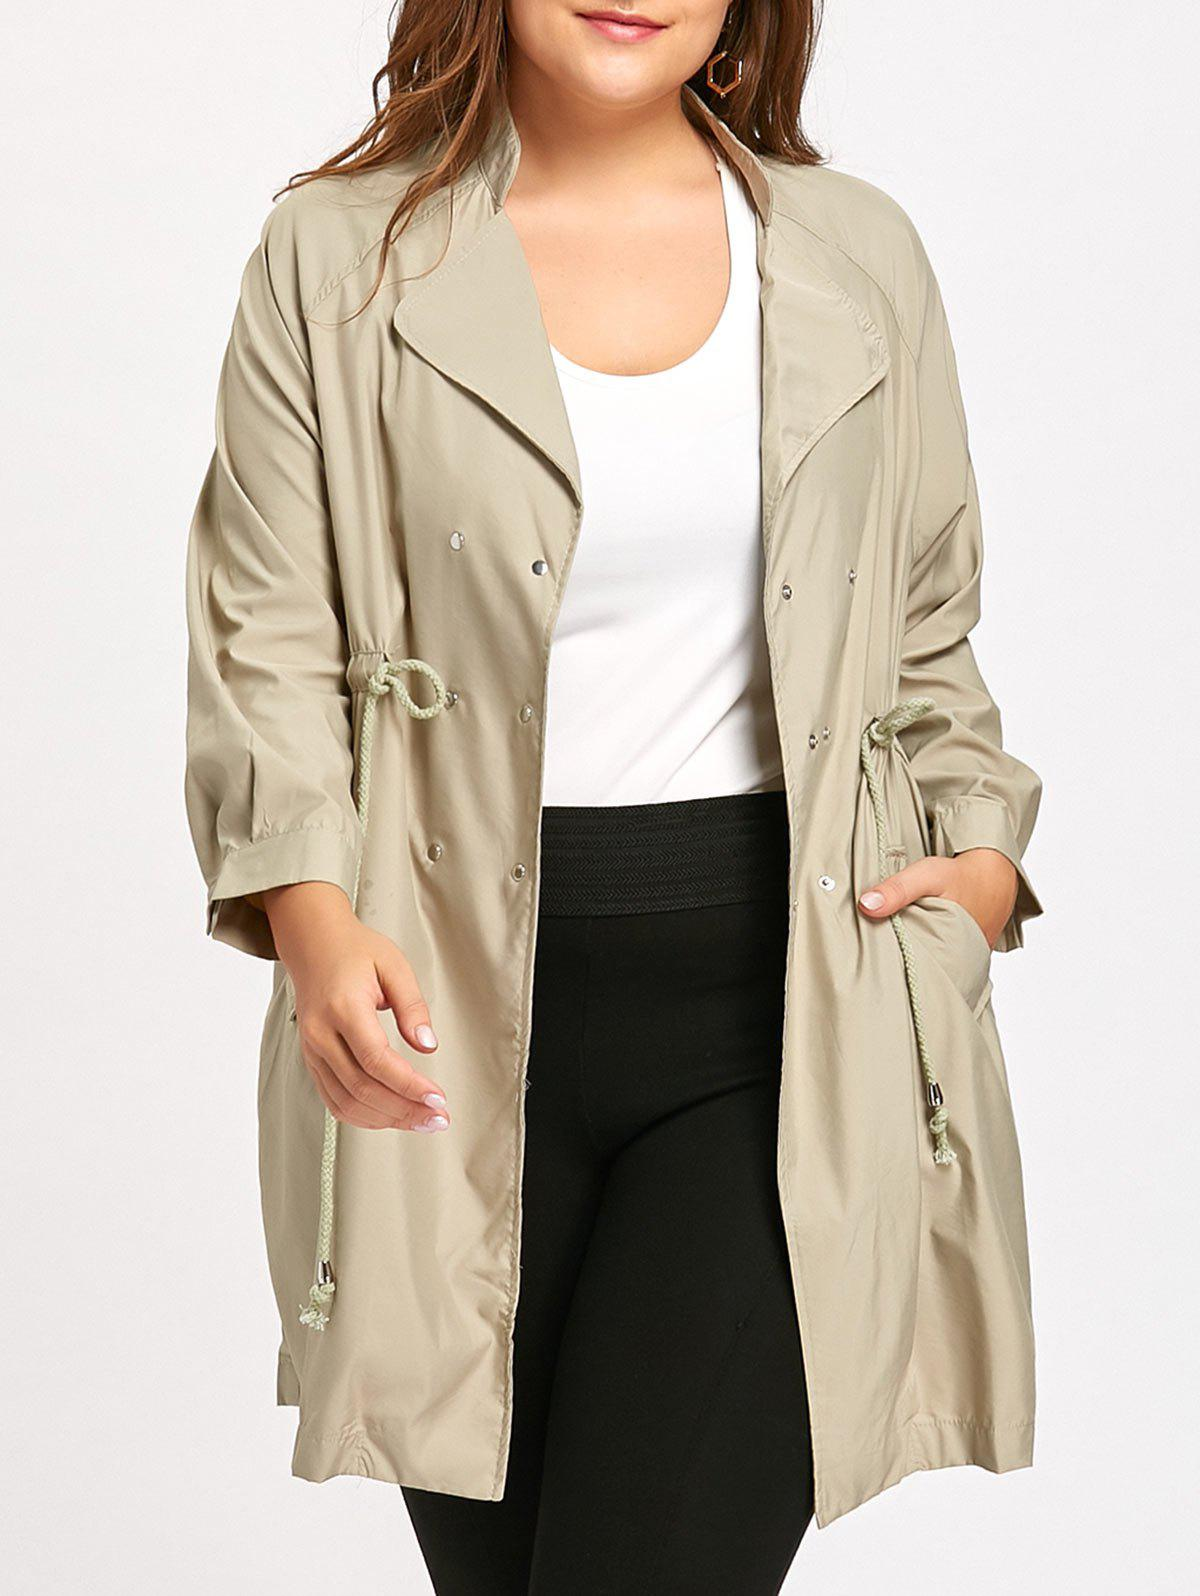 Drawstring High Waist Double Breasted Trench CoatWOMEN<br><br>Size: 3XL; Color: APRICOT; Clothes Type: Trench; Material: Polyester; Type: High Waist; Shirt Length: Long; Sleeve Length: Full; Collar: Lapel; Pattern Type: Solid; Style: Fashion; Season: Fall,Winter; Weight: 0.4100kg; Package Contents: 1 x Coat;